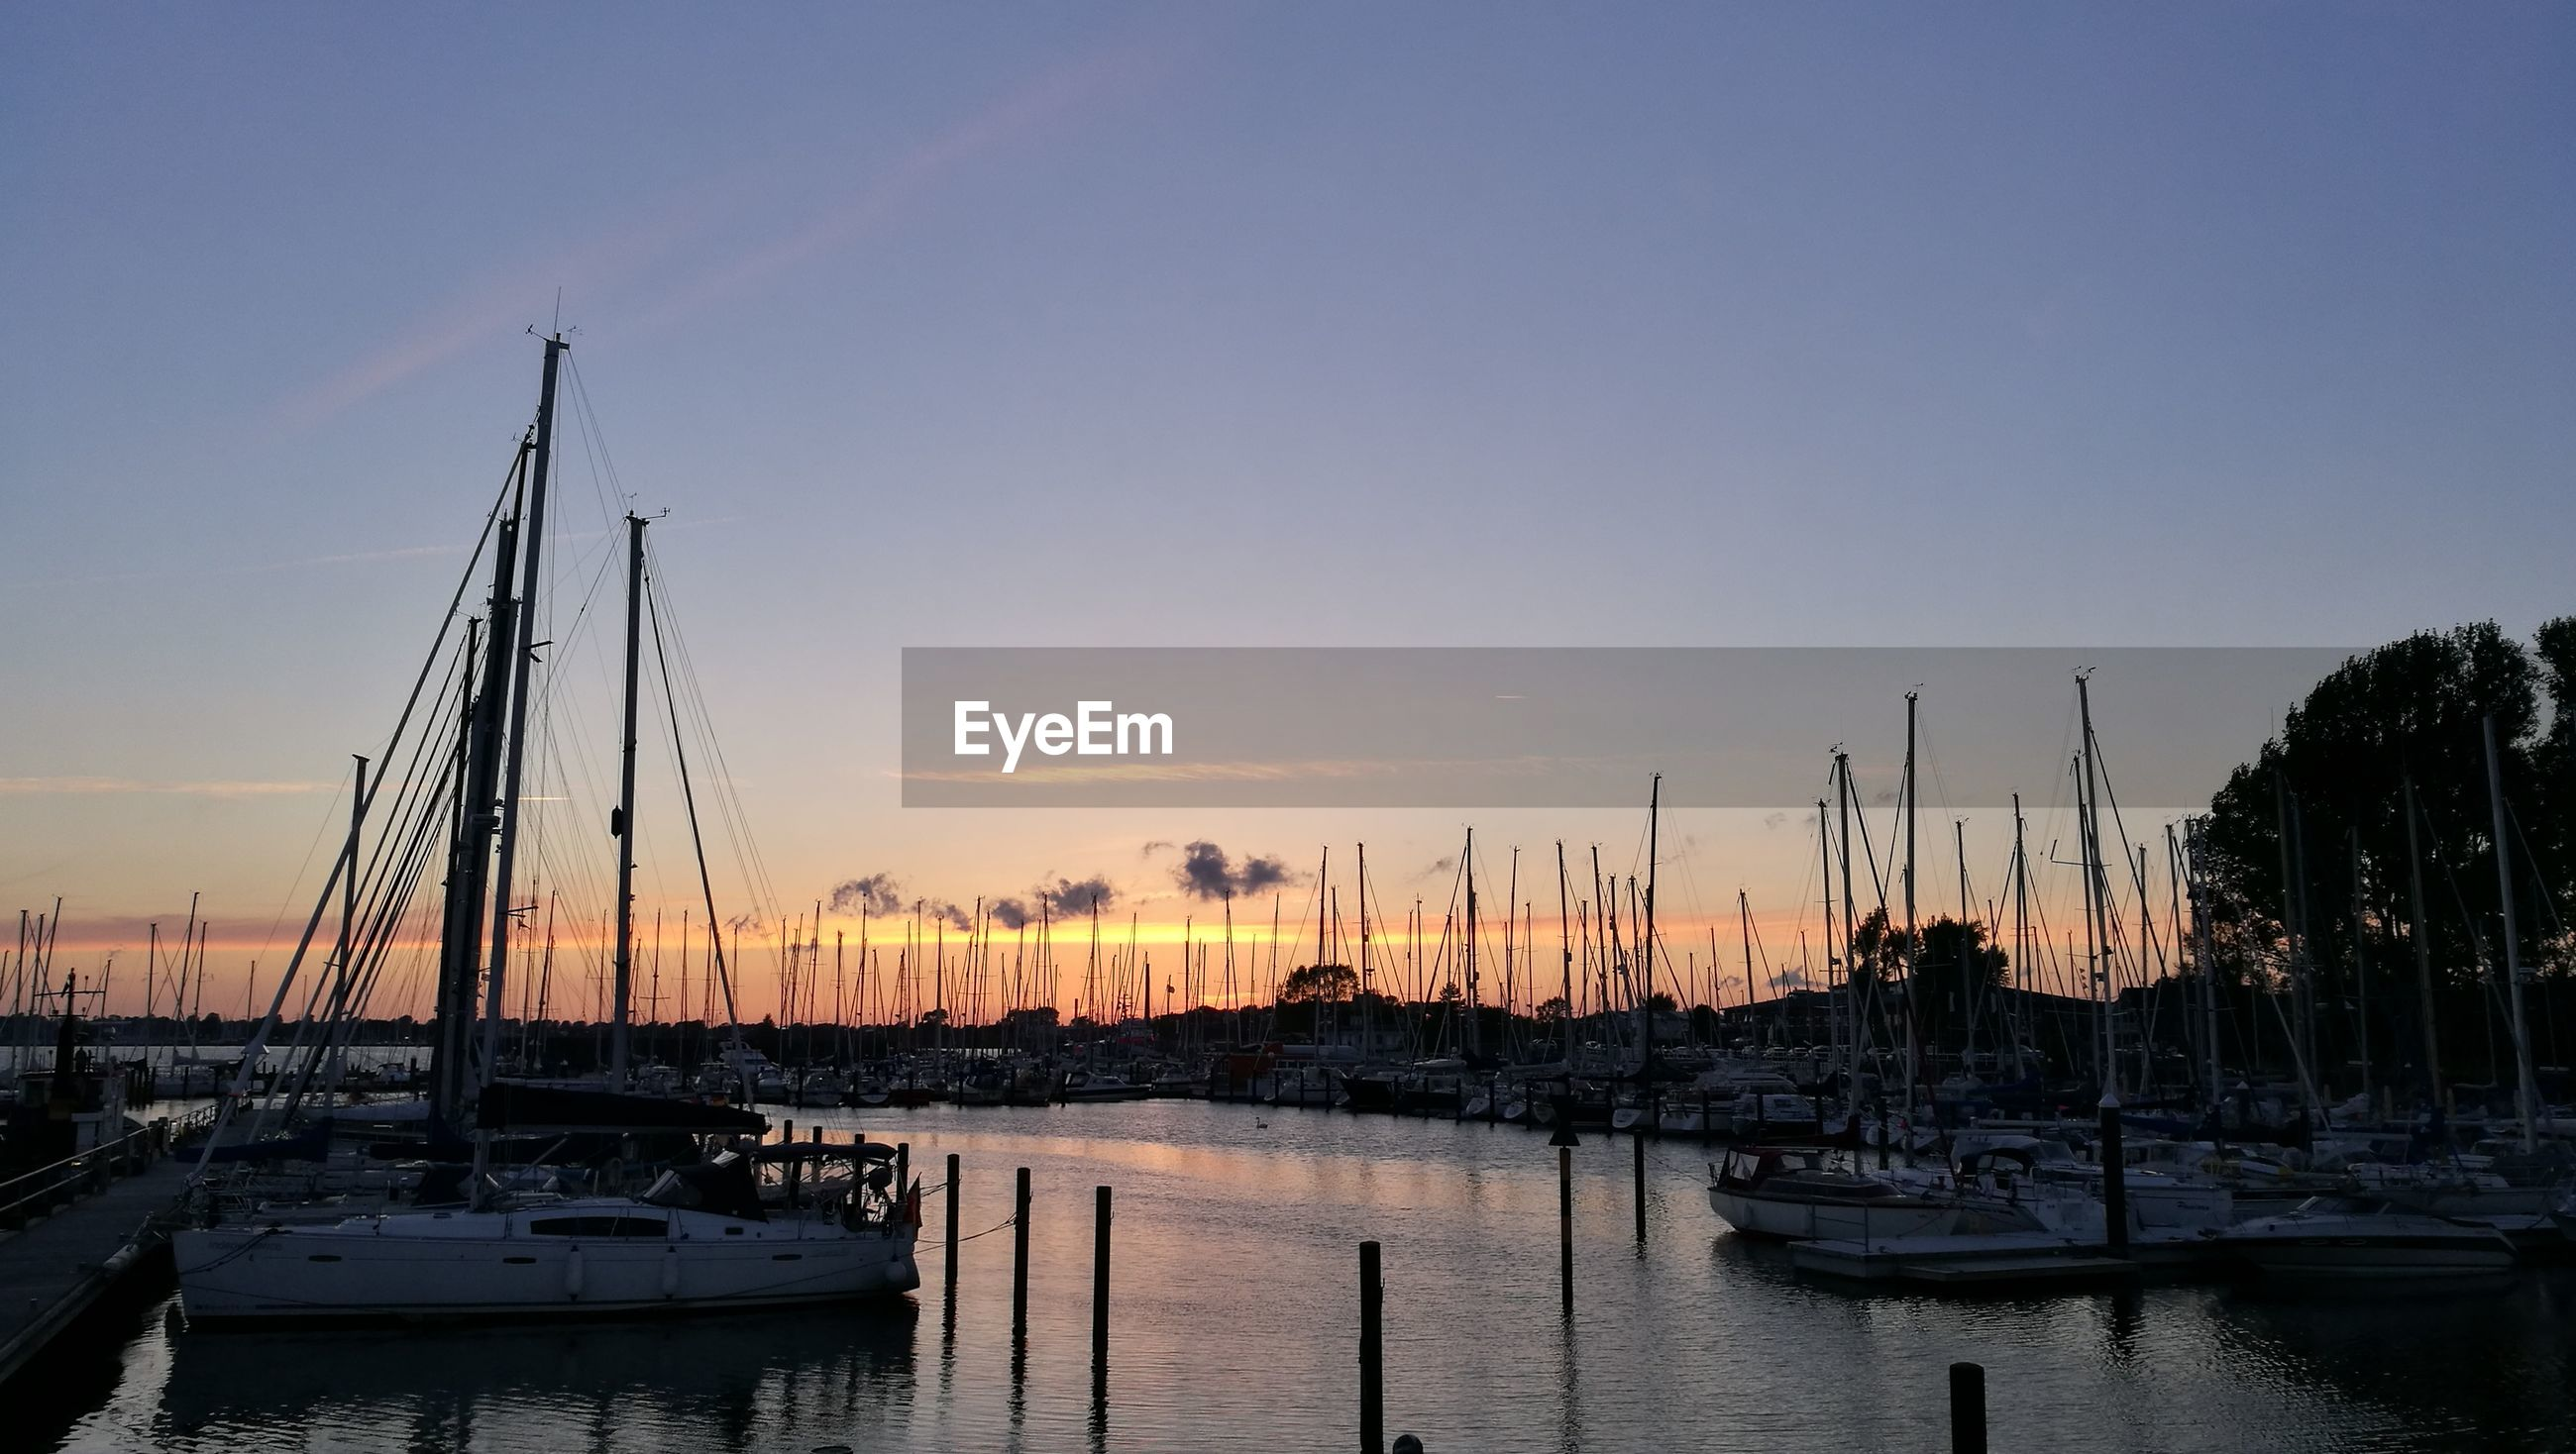 SAILBOATS MOORED IN HARBOR DURING SUNSET